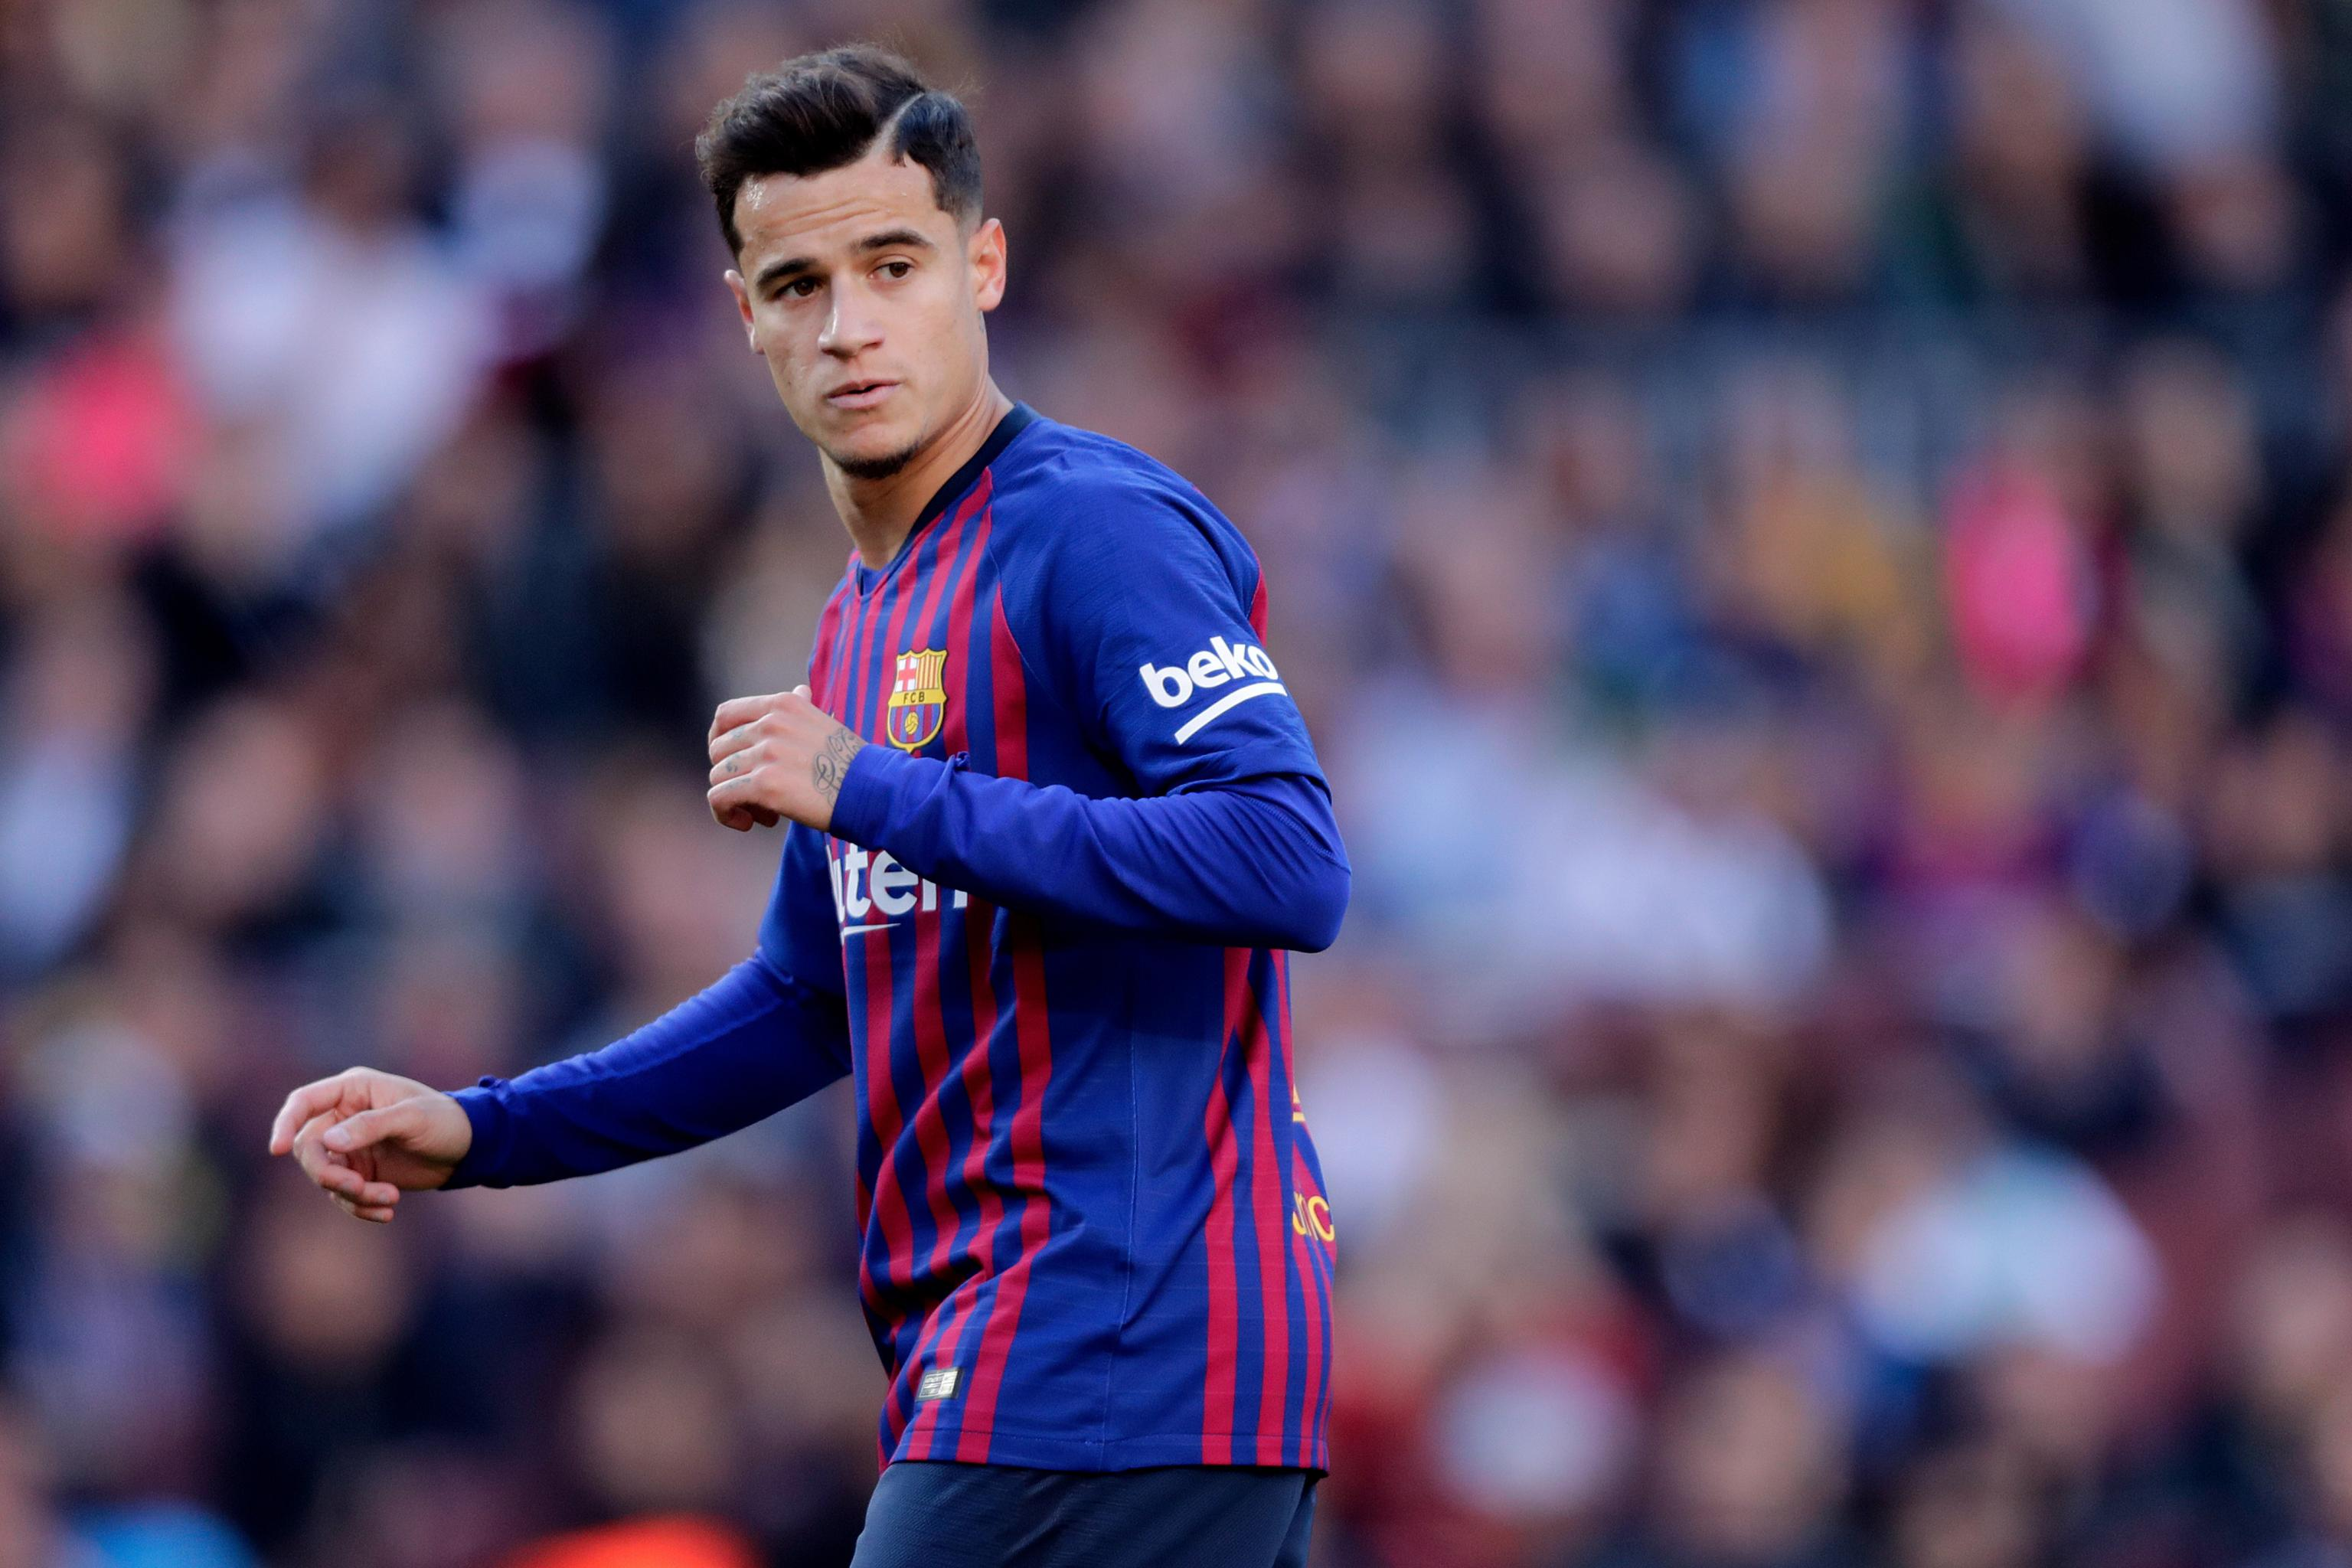 Barcelona Manager Ernesto Valverde On Philippe Coutinho He S With Us Bleacher Report Latest News Videos And Highlights